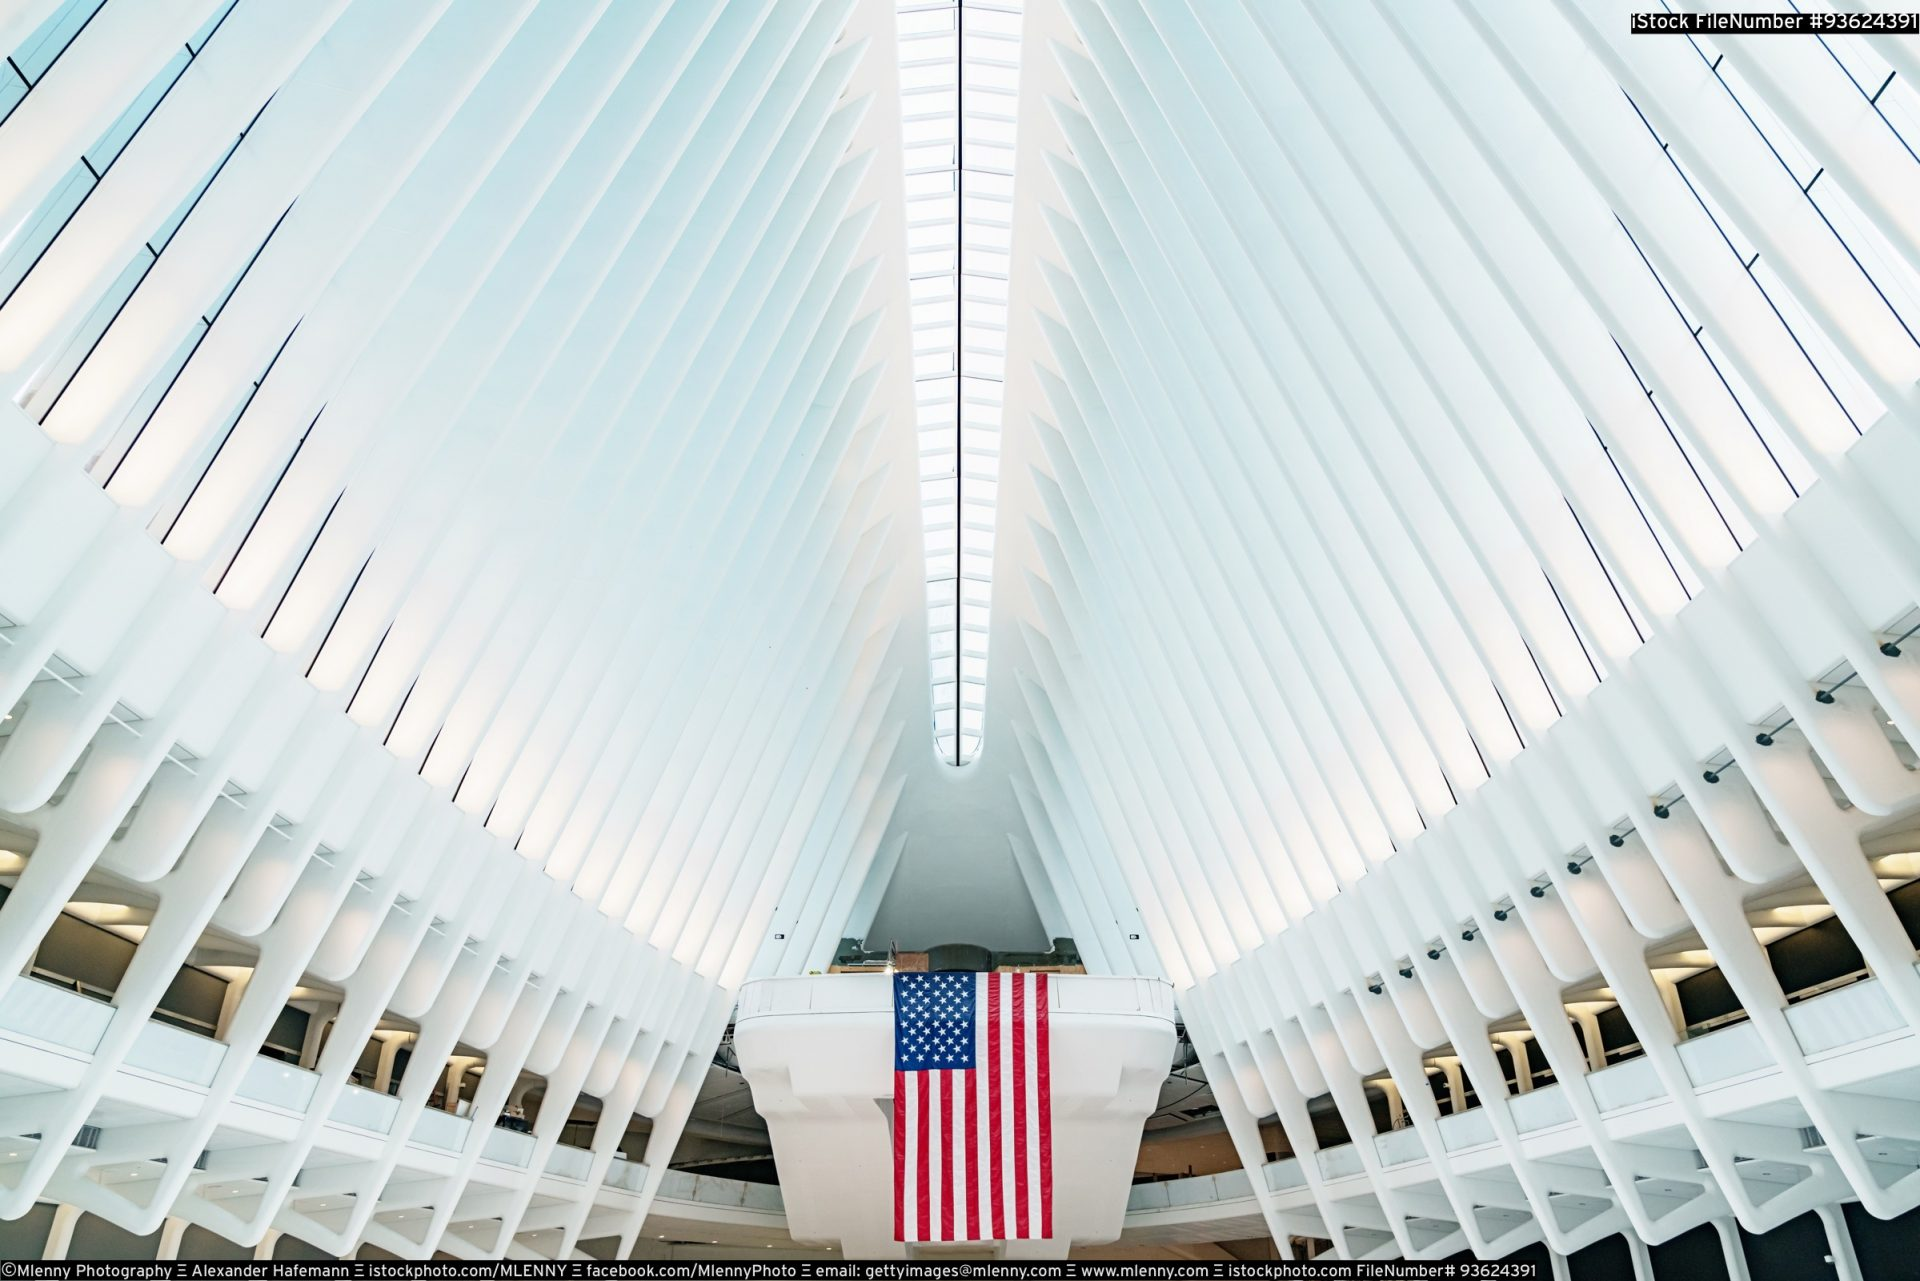 Oculus New York City WTC Transportation Hub